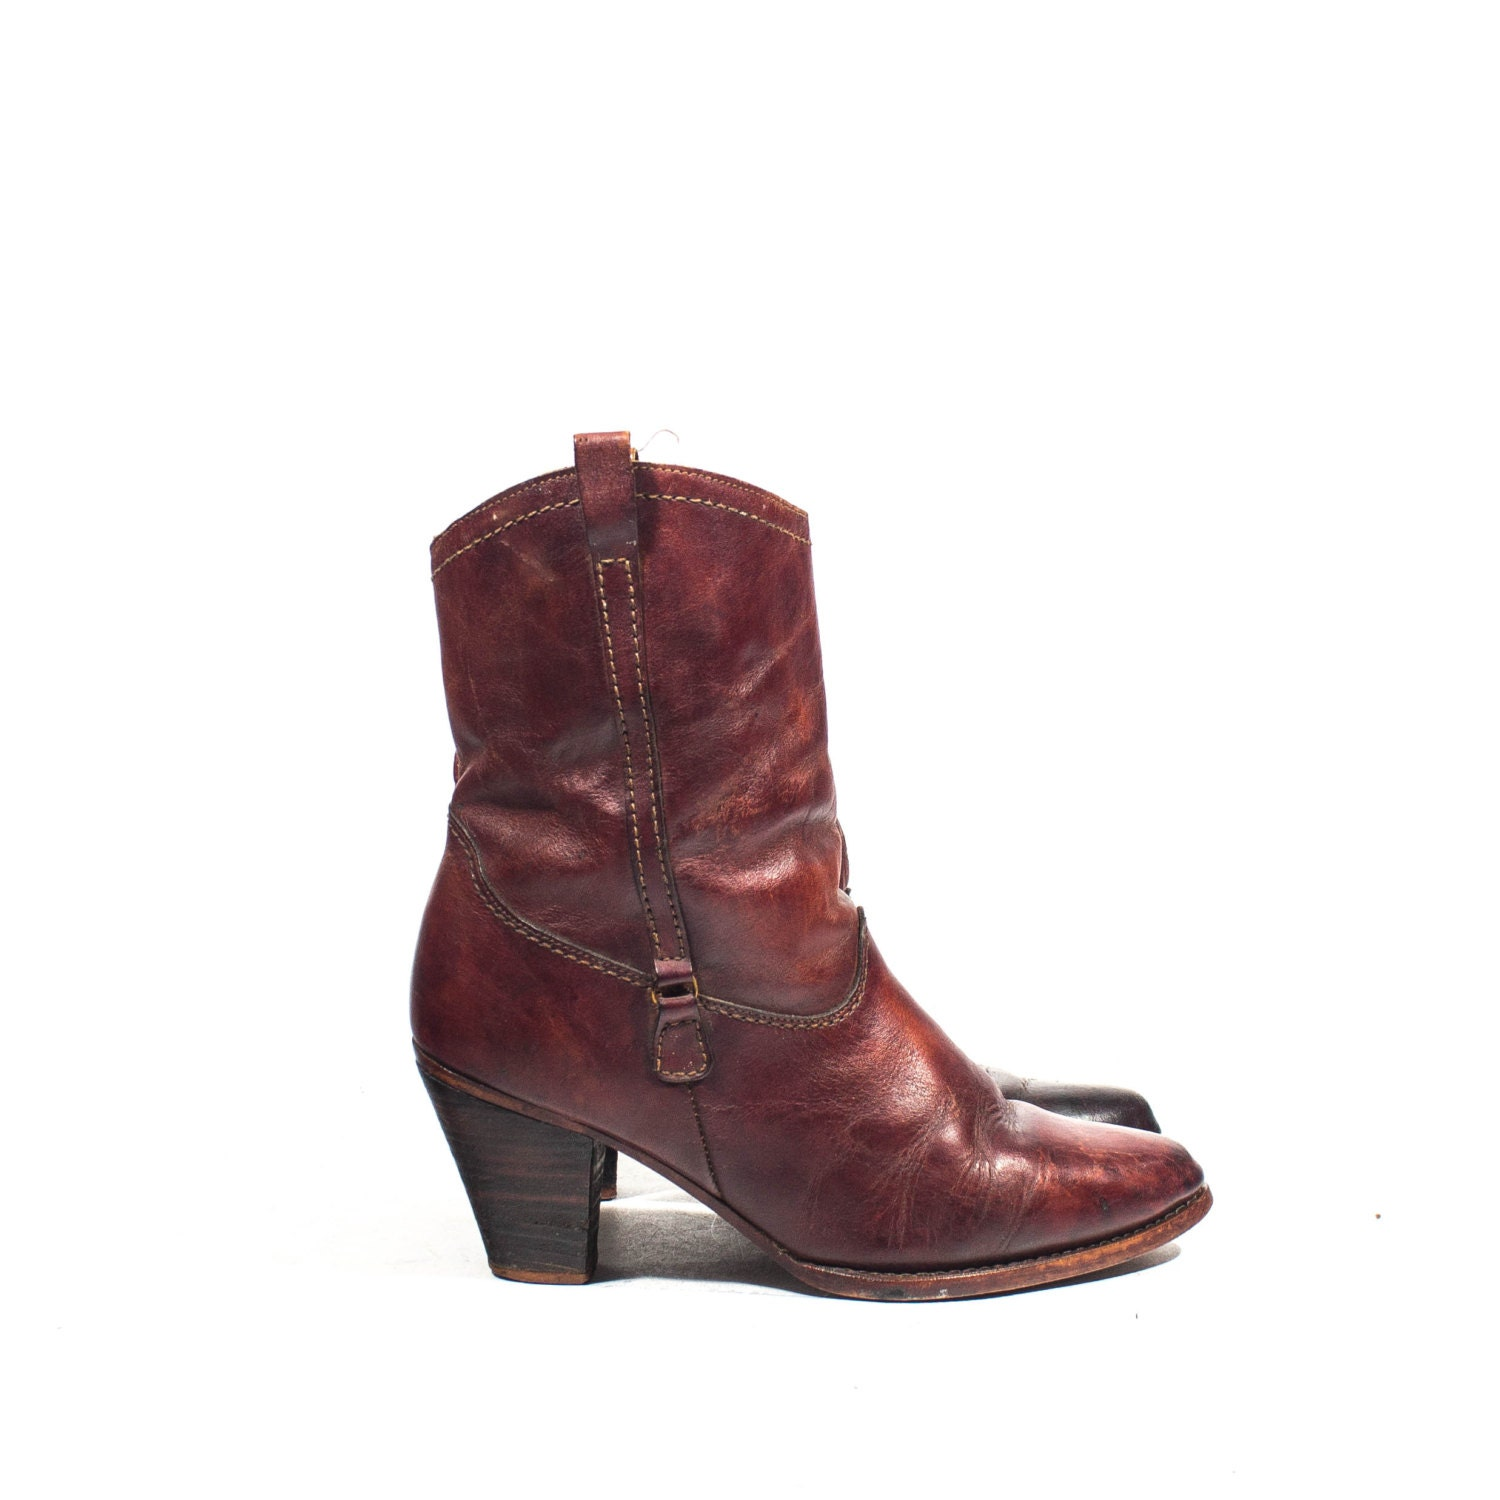 vintage heel ankle boots in burgundy by